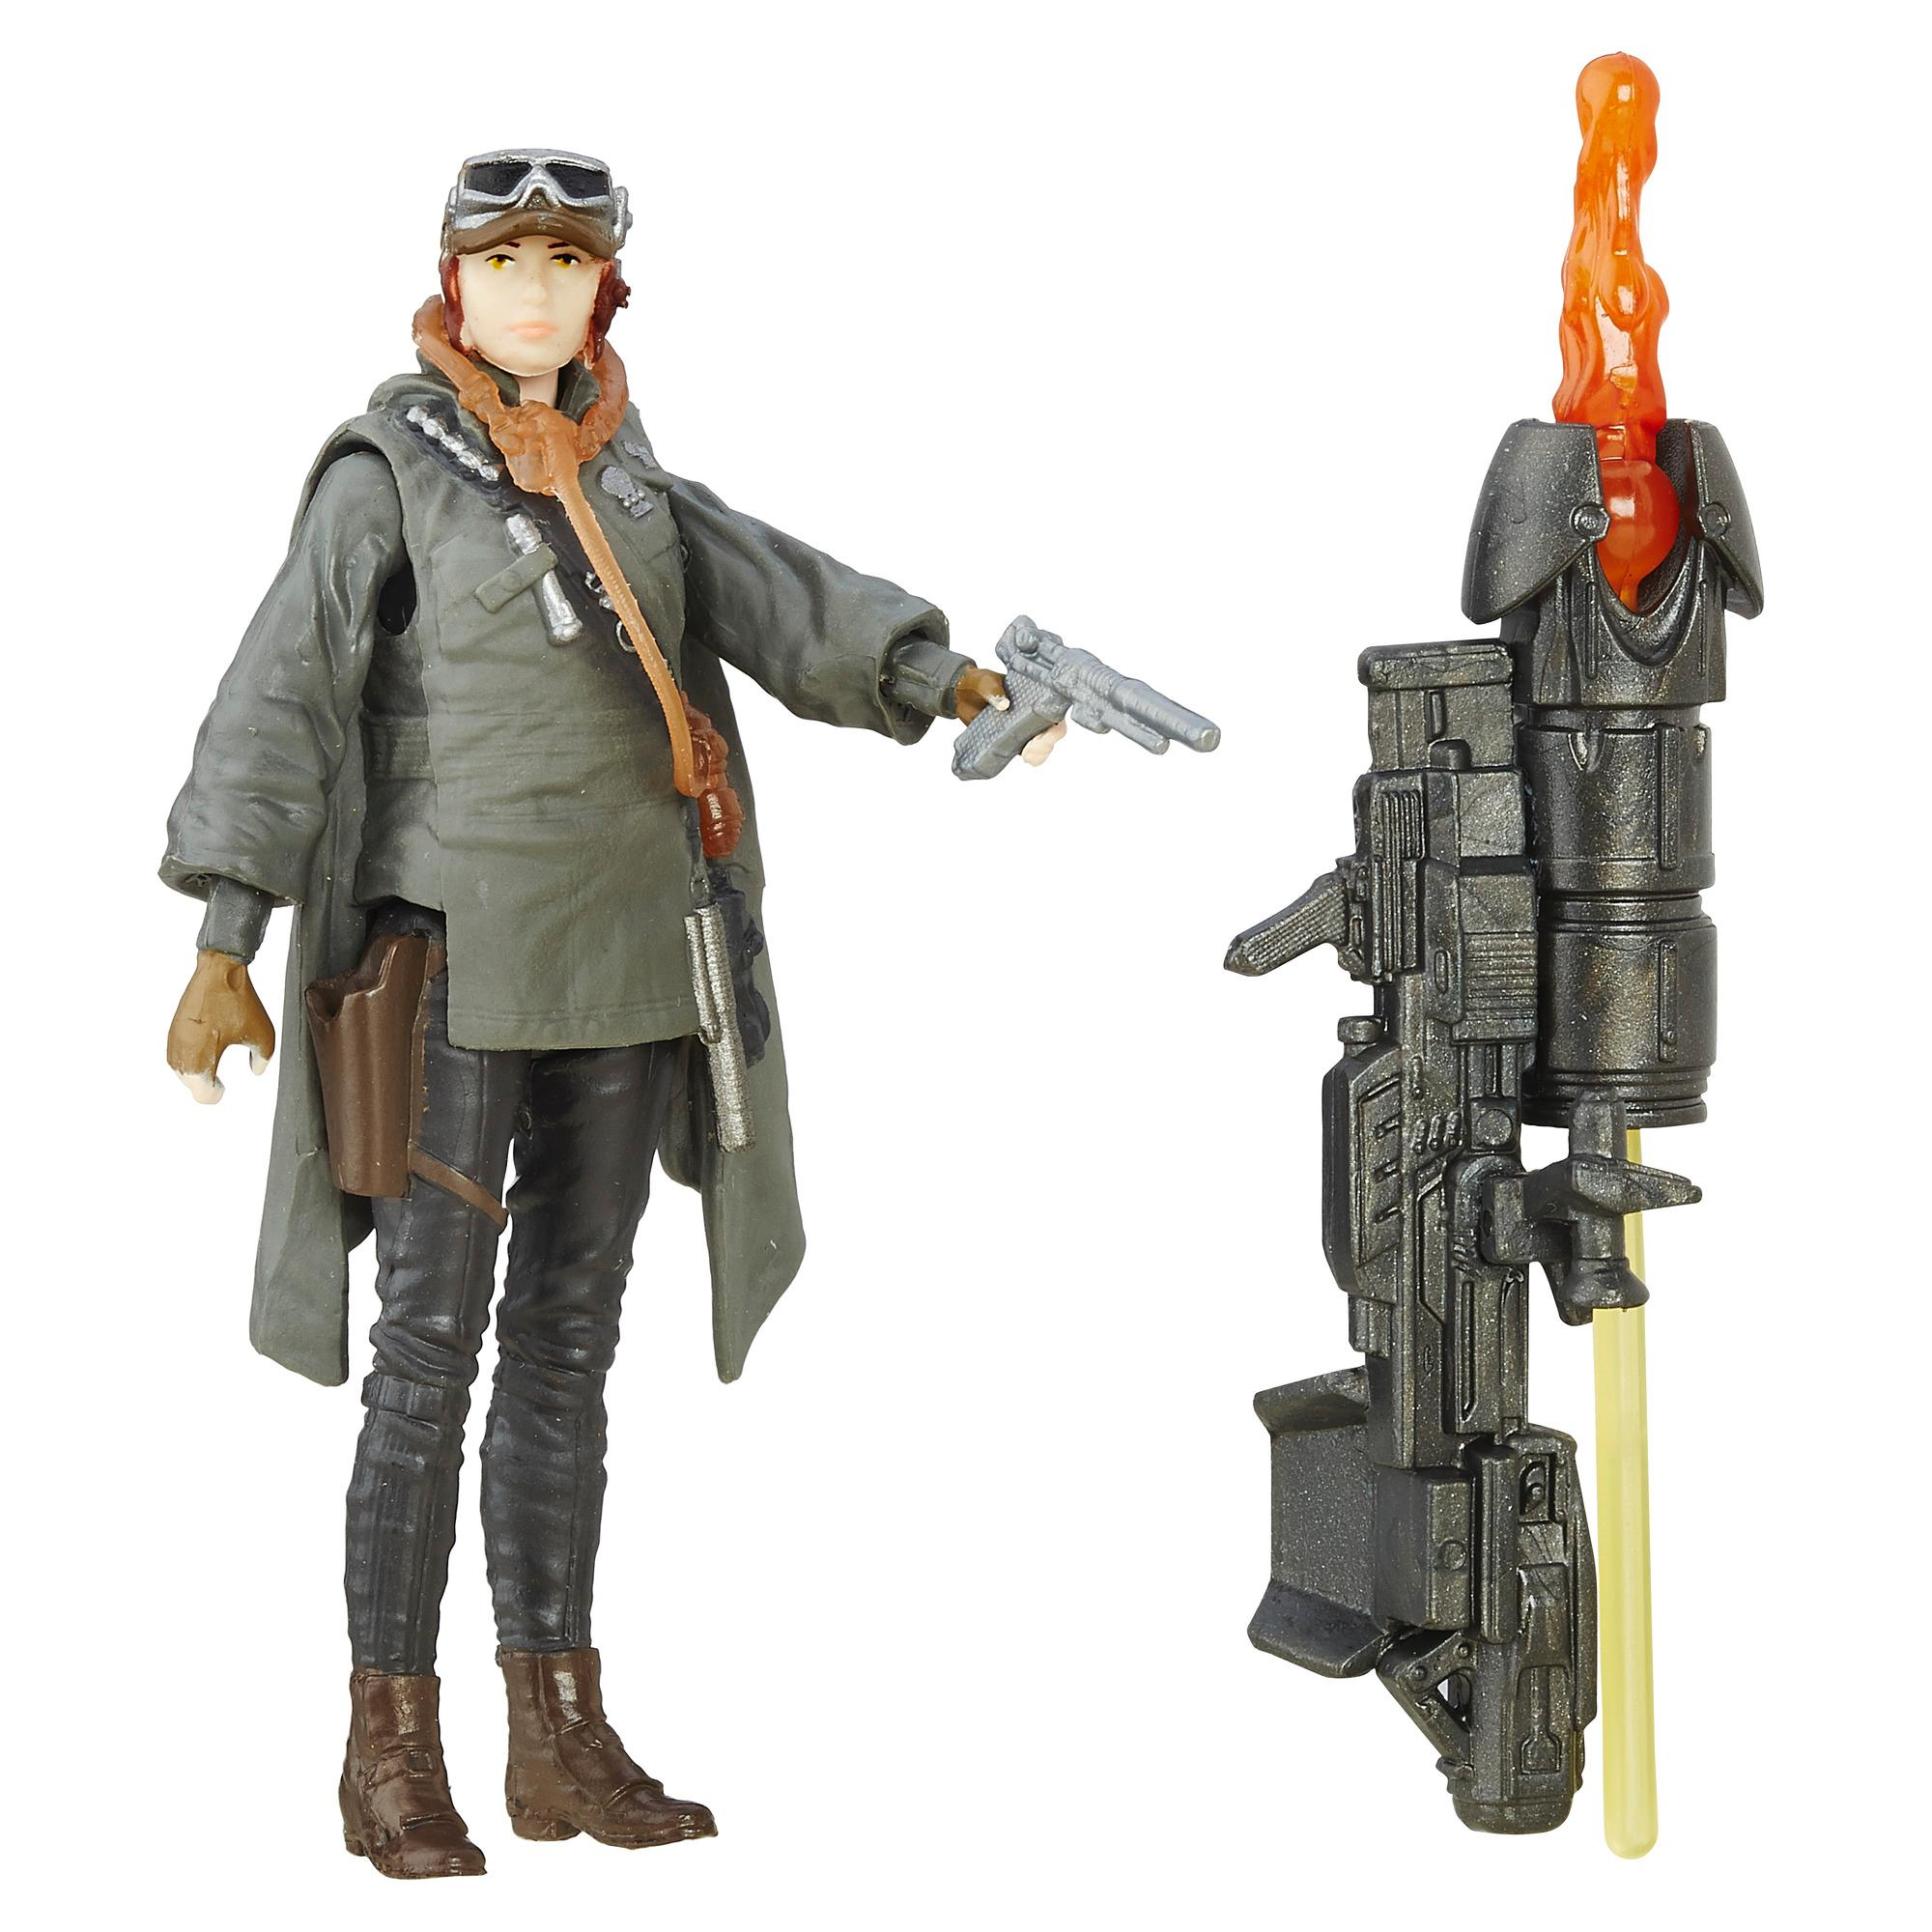 Figura Star Wars Rogue One sargento Jyn Erso